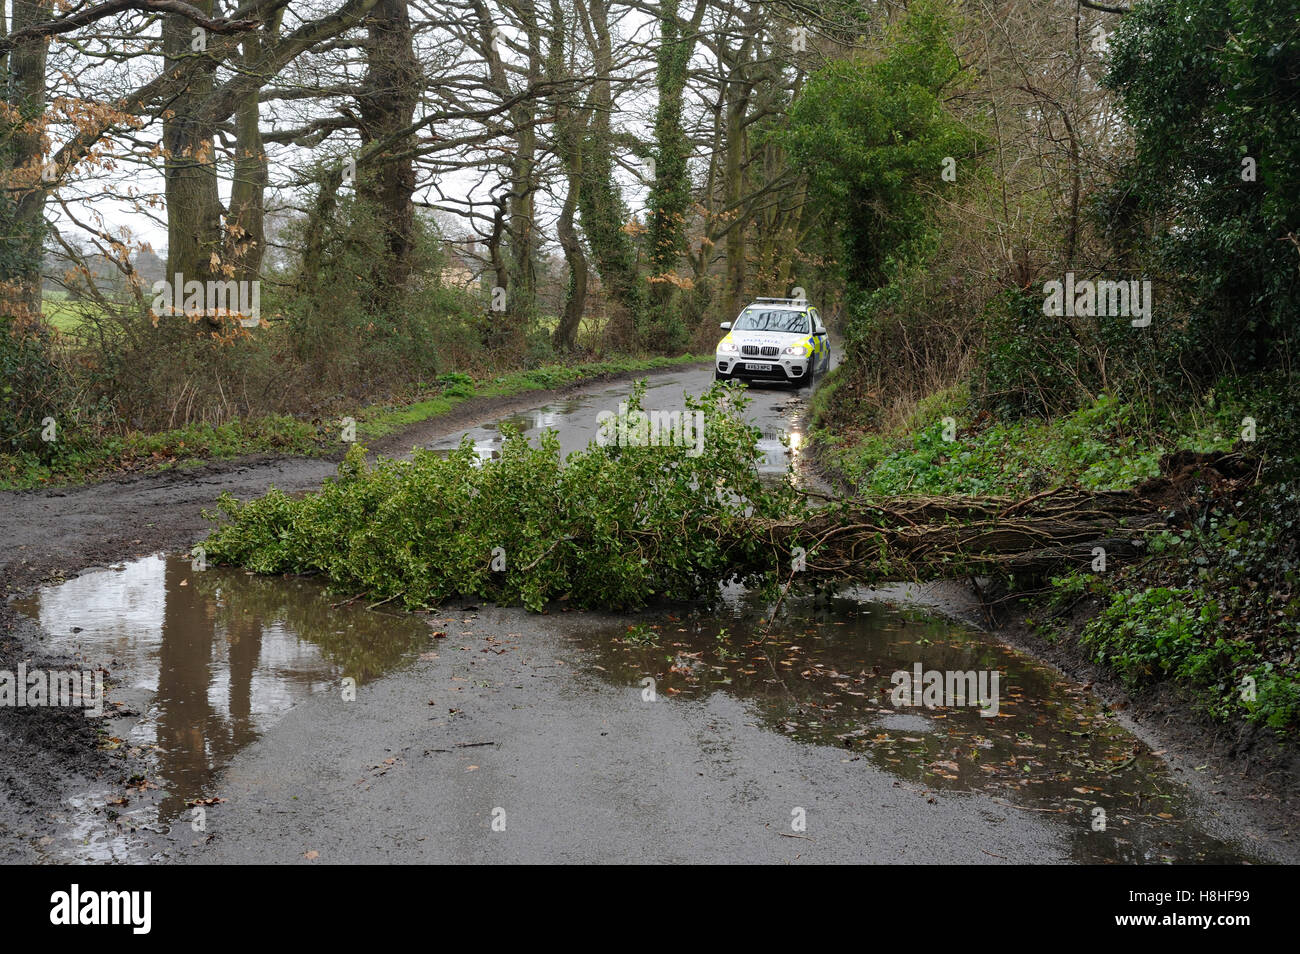 Fallen tree blown over by high winds and approaching police car Stock Photo